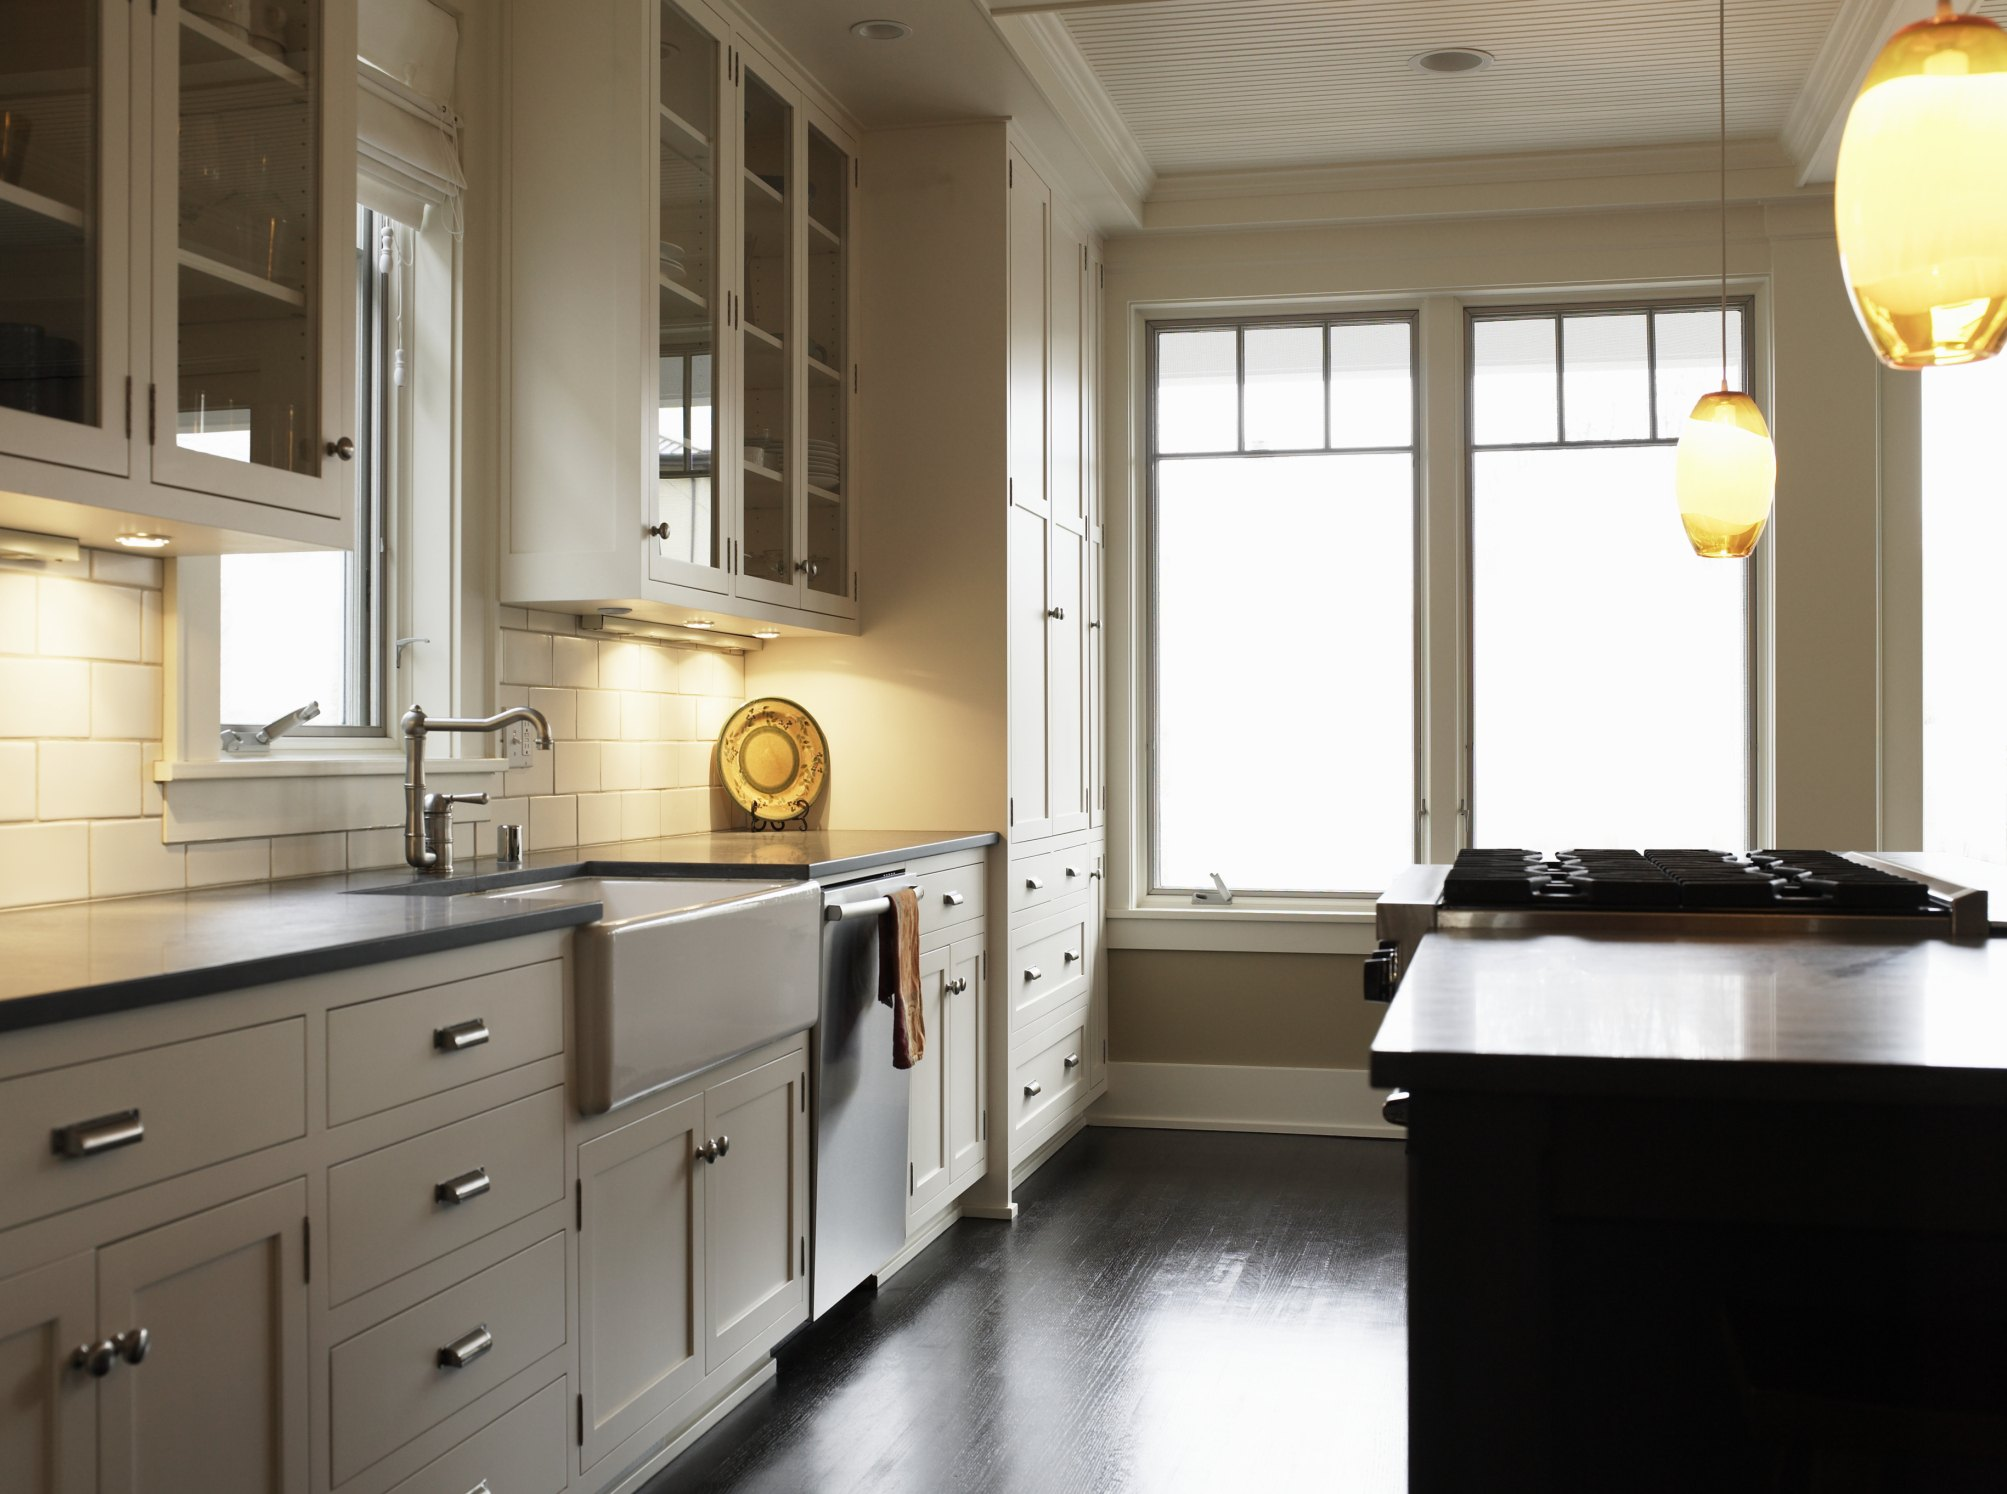 What Is A Kitchen Soffit And Can I Remove It: How To Build An Apron Kitchen Cabinet